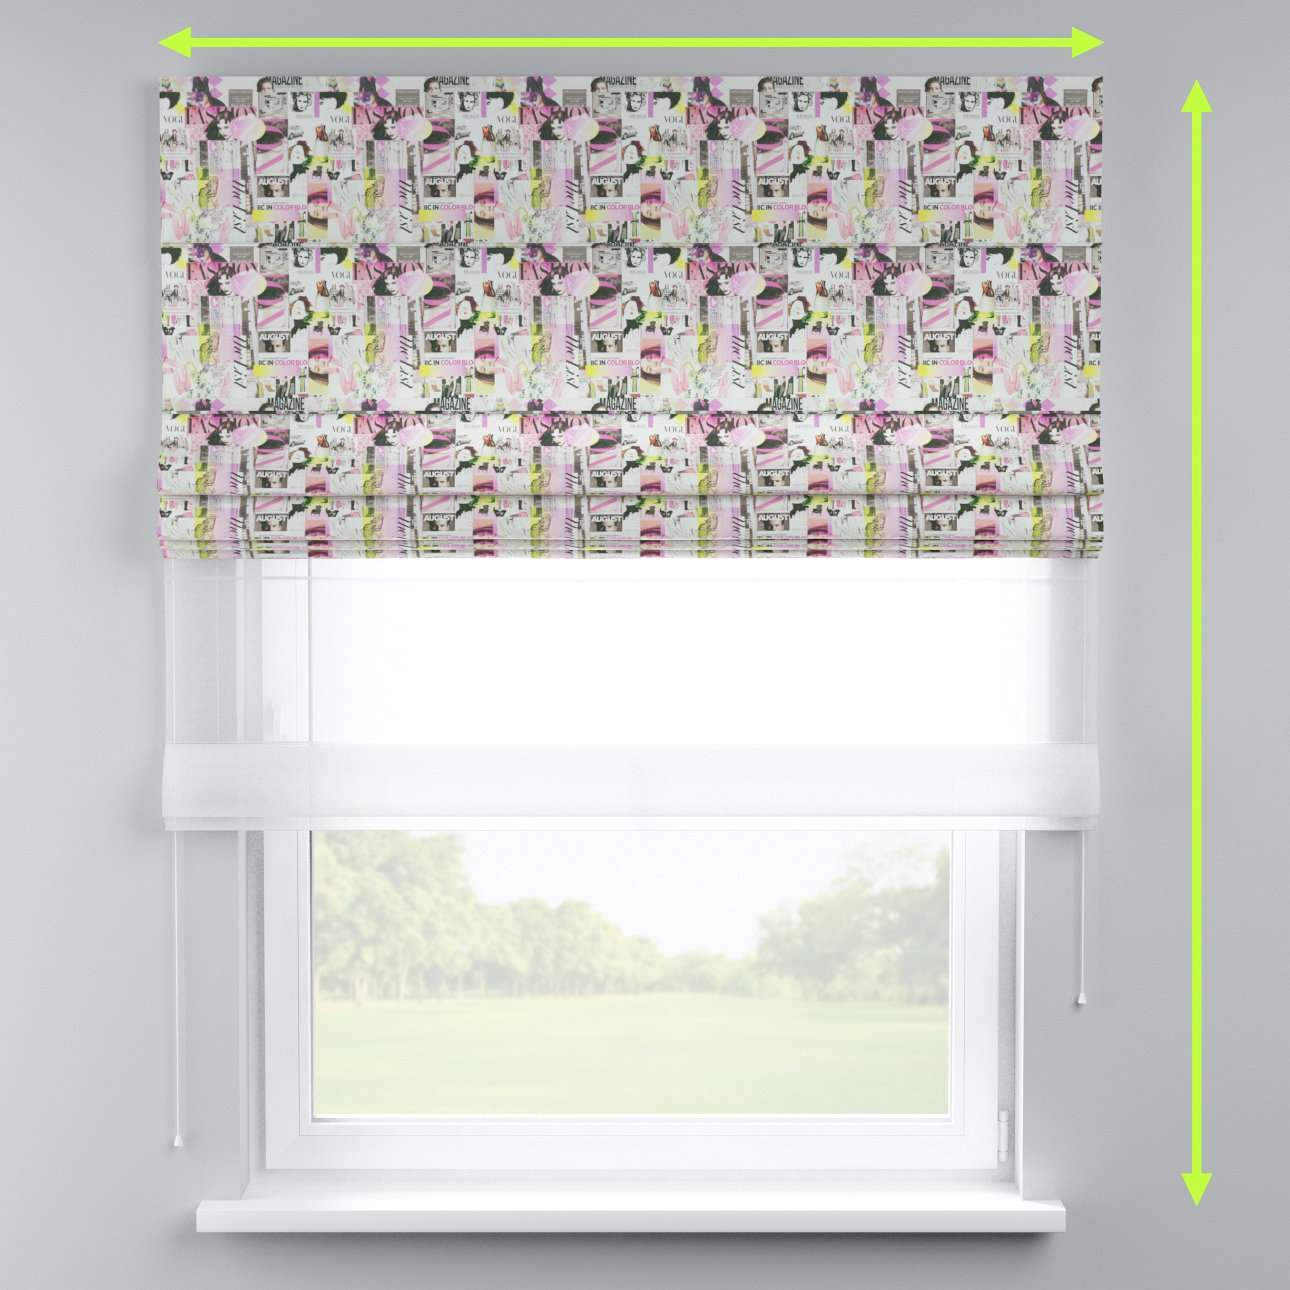 Voile and fabric roman blind (DUO II) in collection Freestyle, fabric: 135-15